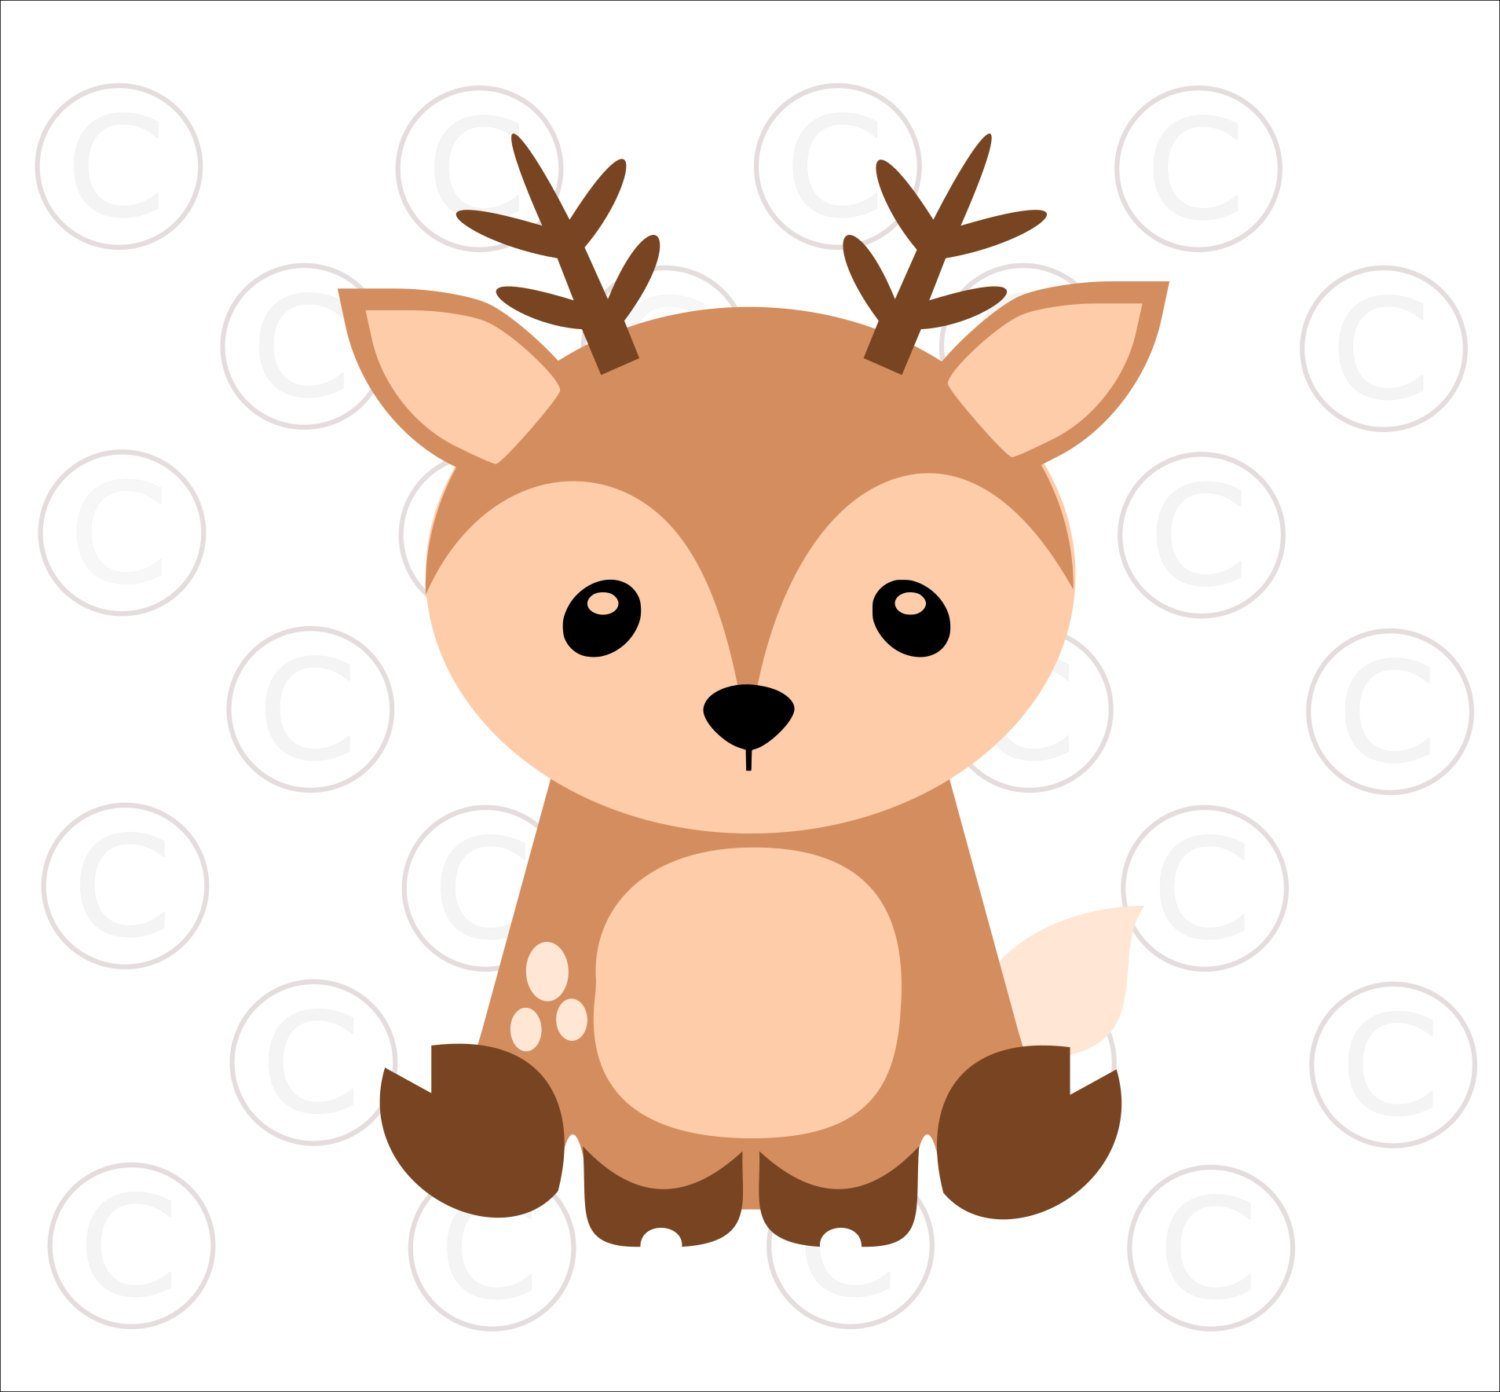 Deer Face Clipart at GetDrawings.com.